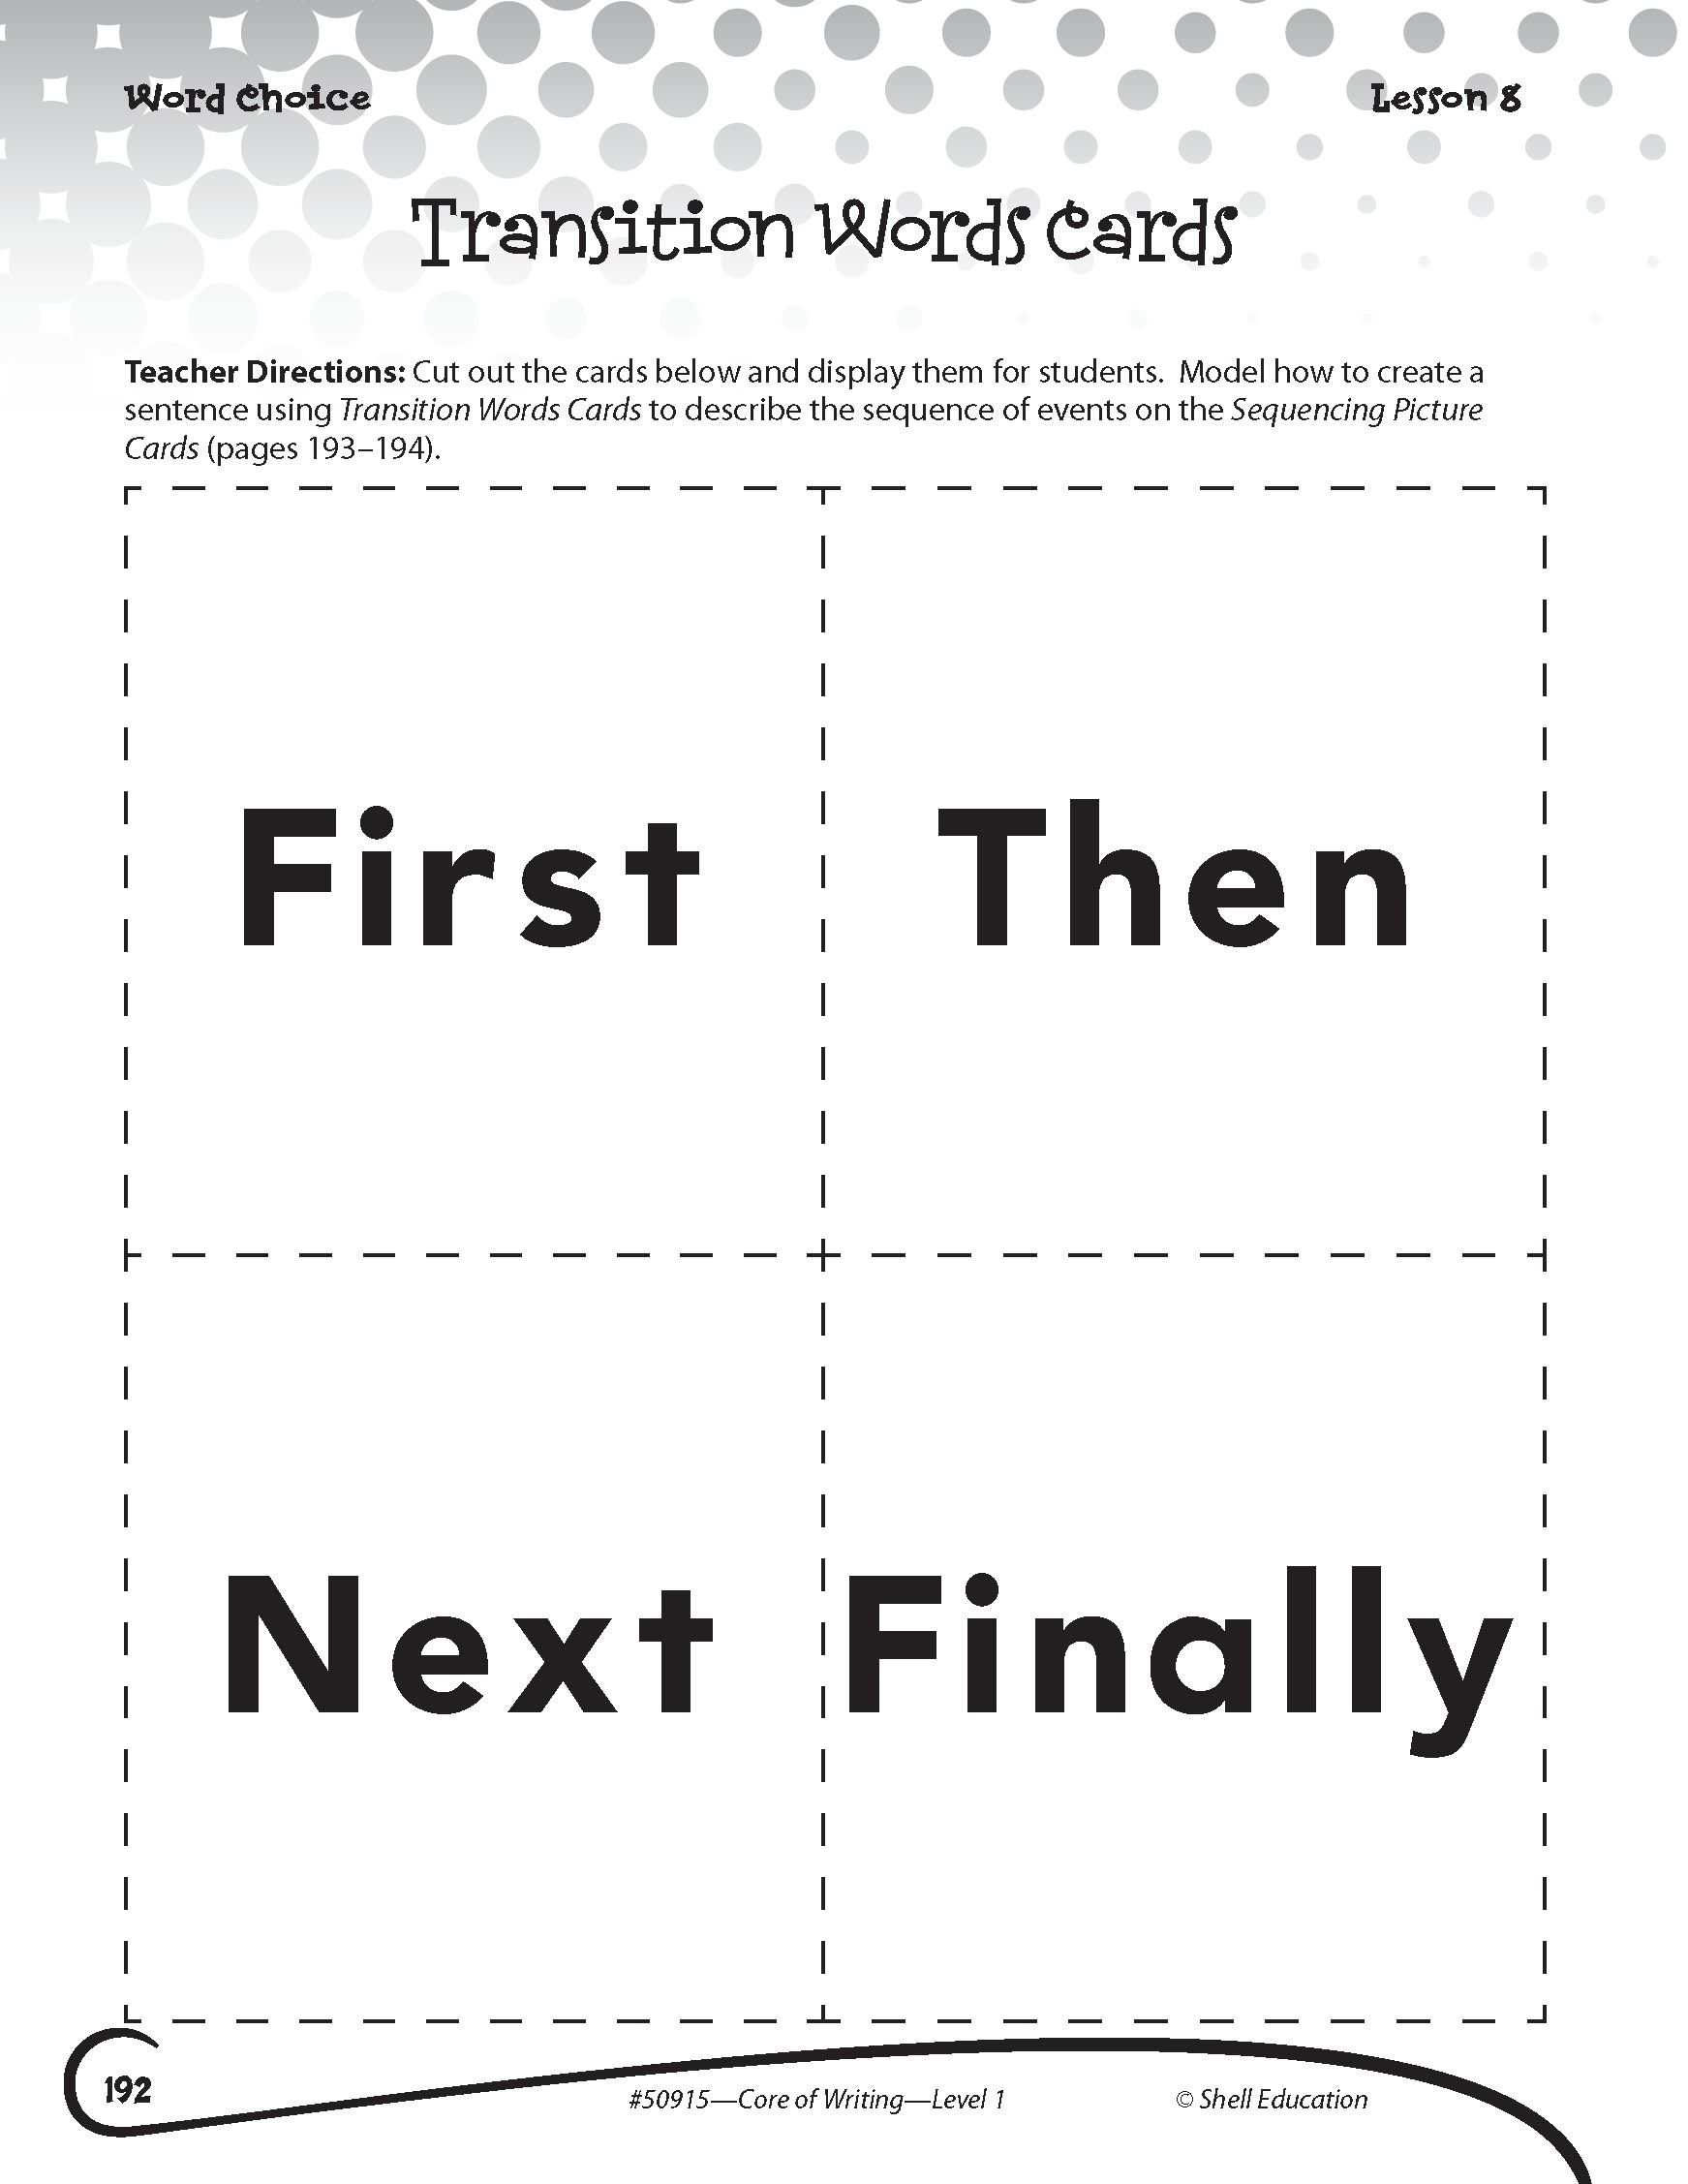 Transition Words Cards From Getting To The Core Of Writing